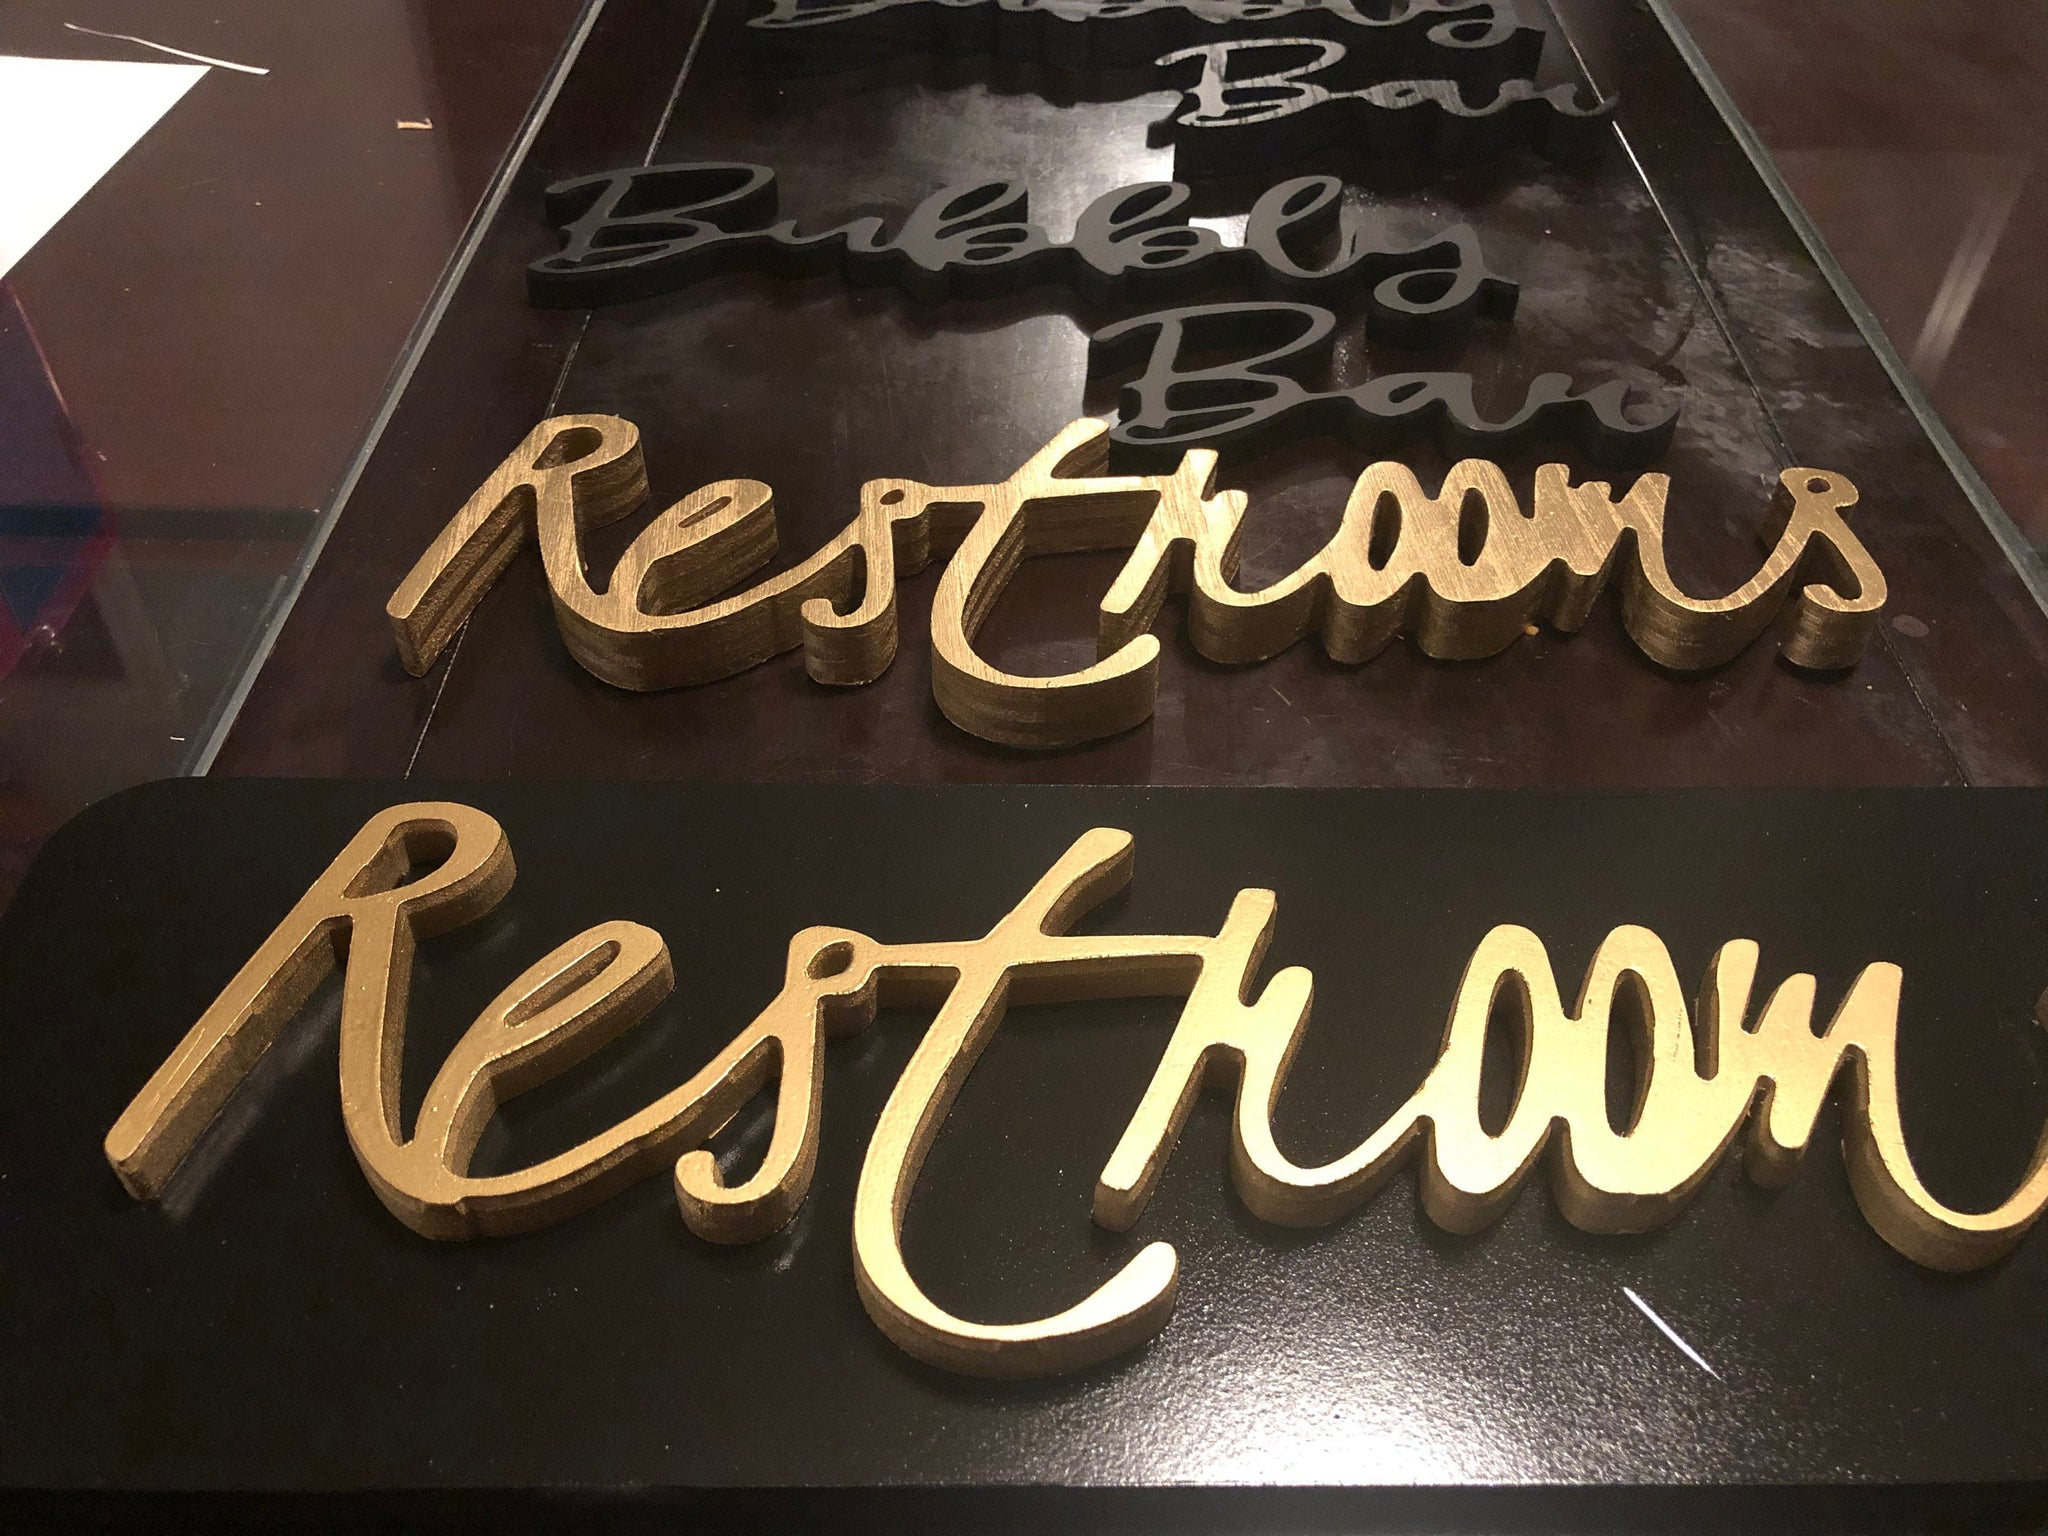 Custom Wood Script Lettering/Signs Finished/Painted